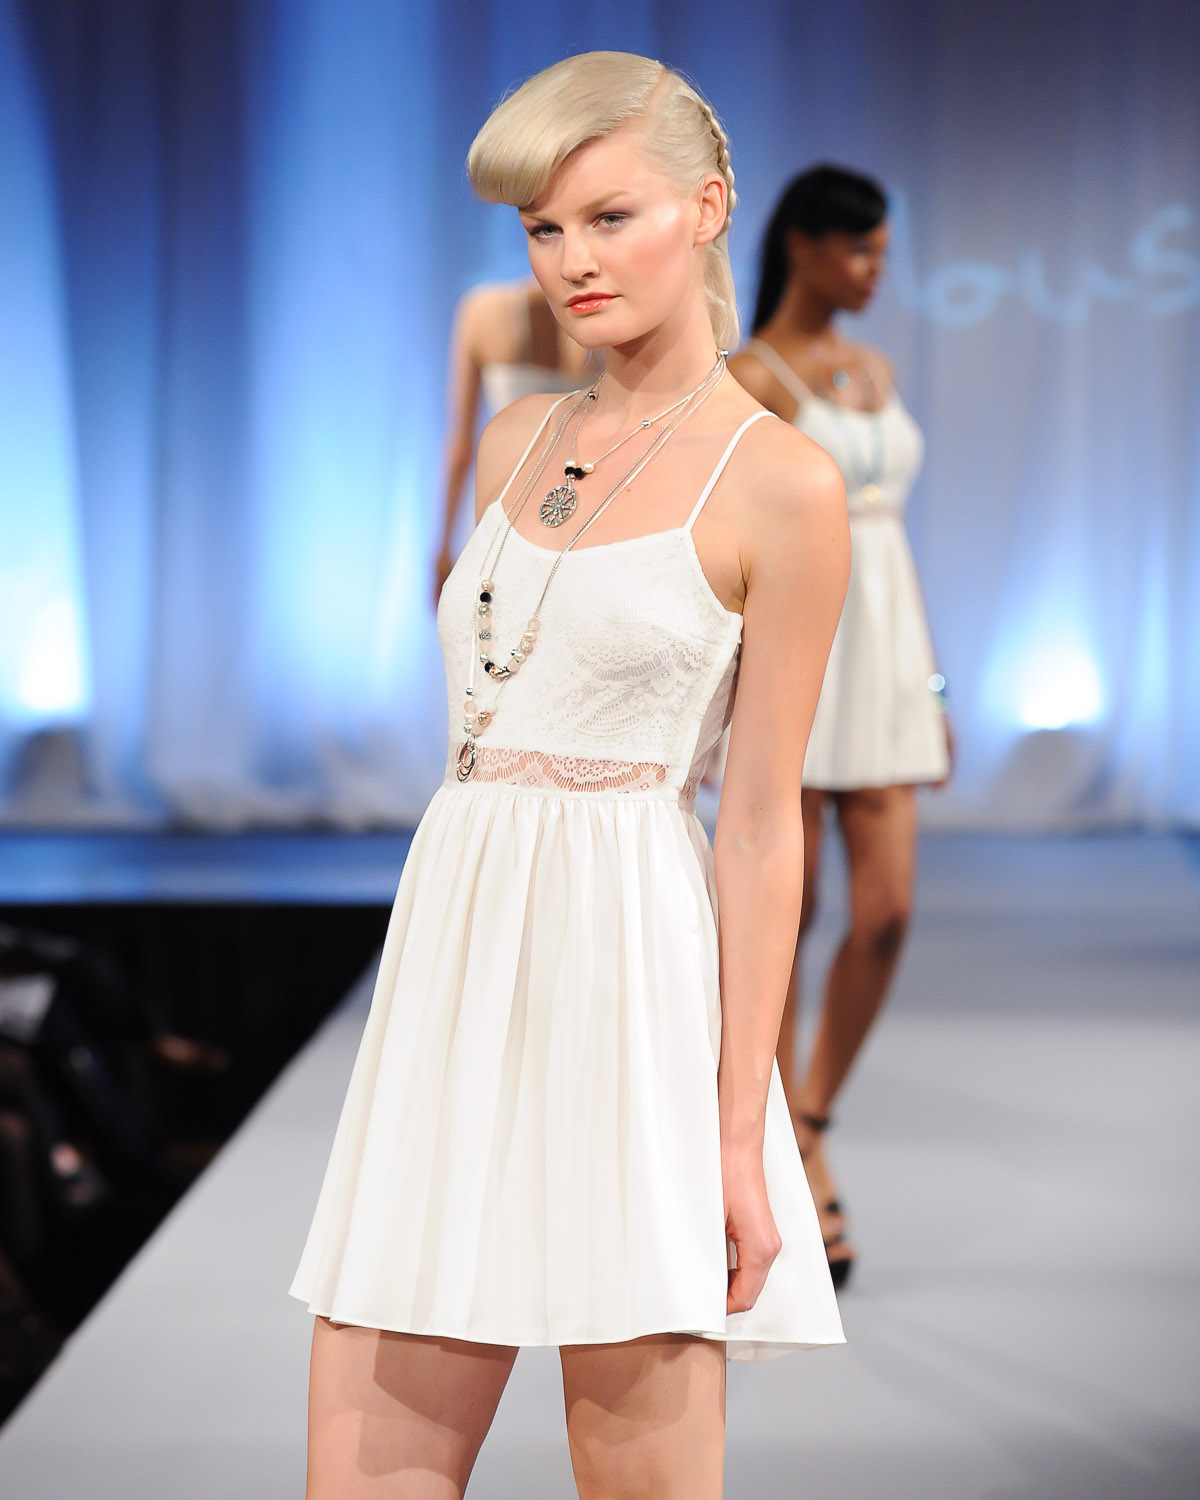 bath-in-fashion-spring-summer-11.jpg